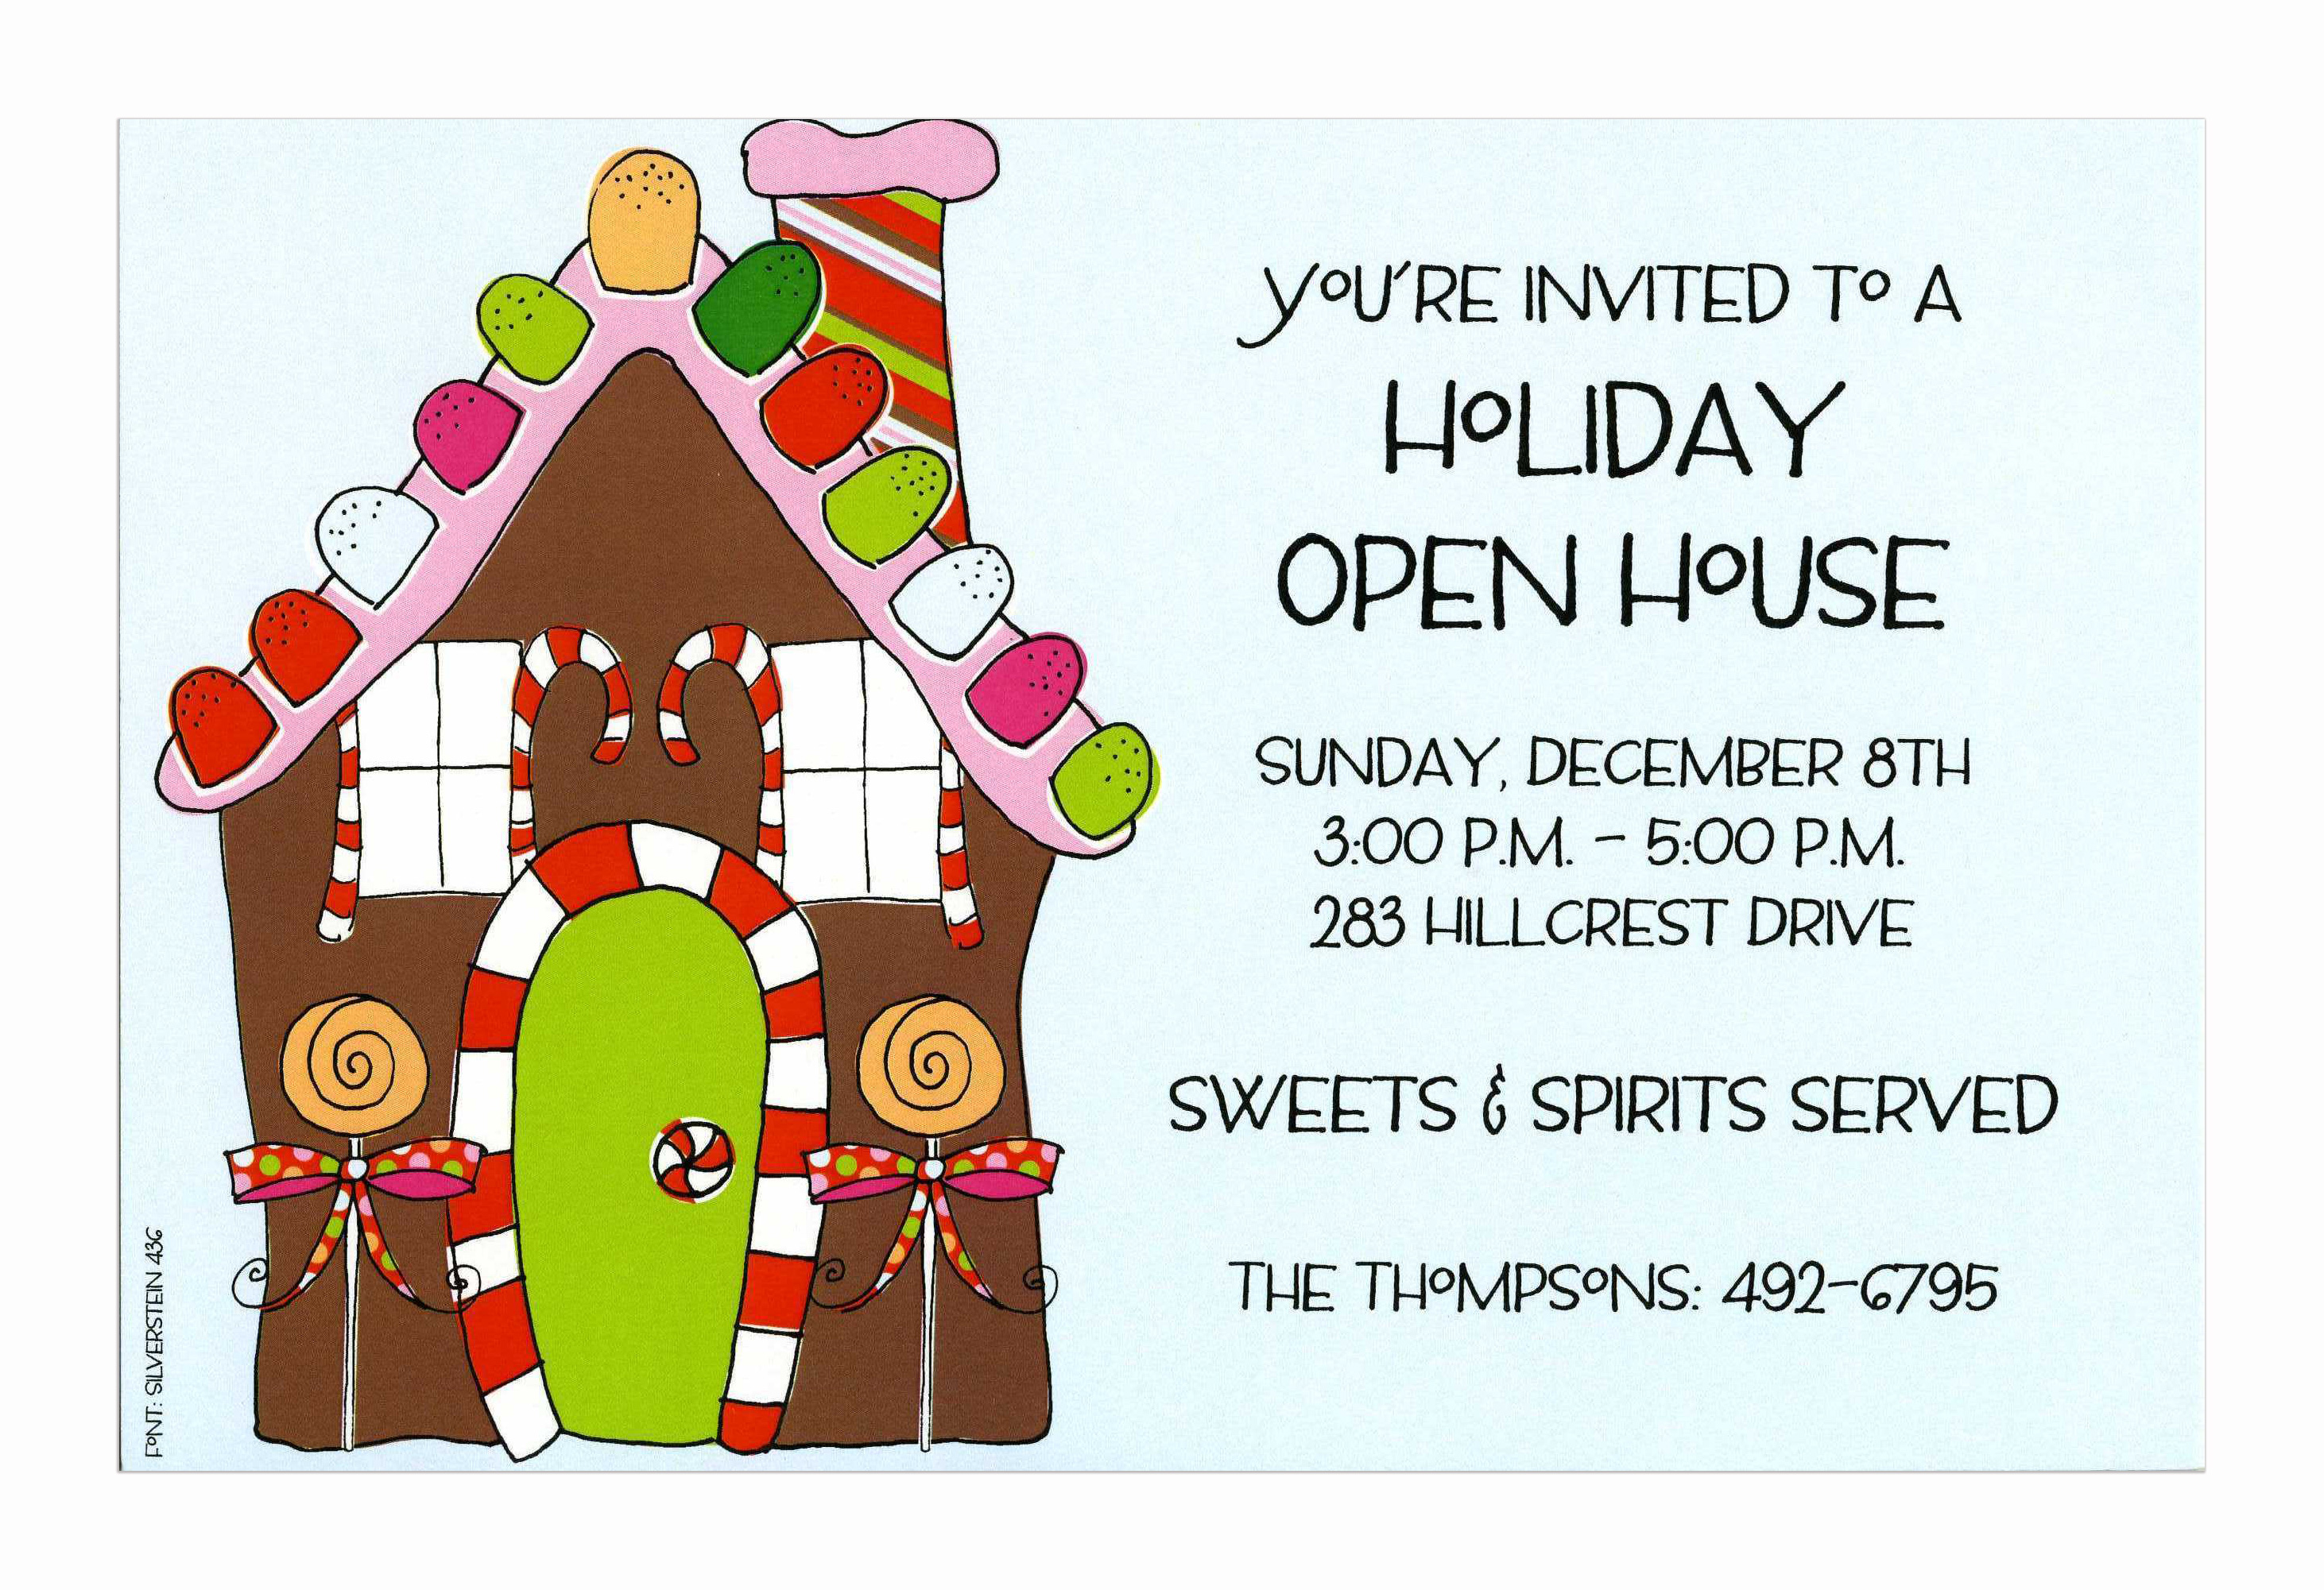 Sweet House - This yummy invitation shows a candy-covered gingerbread house complete with gumdrop roof and candy can window shutters!  What a delicious way to invite friends and family to your holiday open house or Christmas party! Includes white envelope.